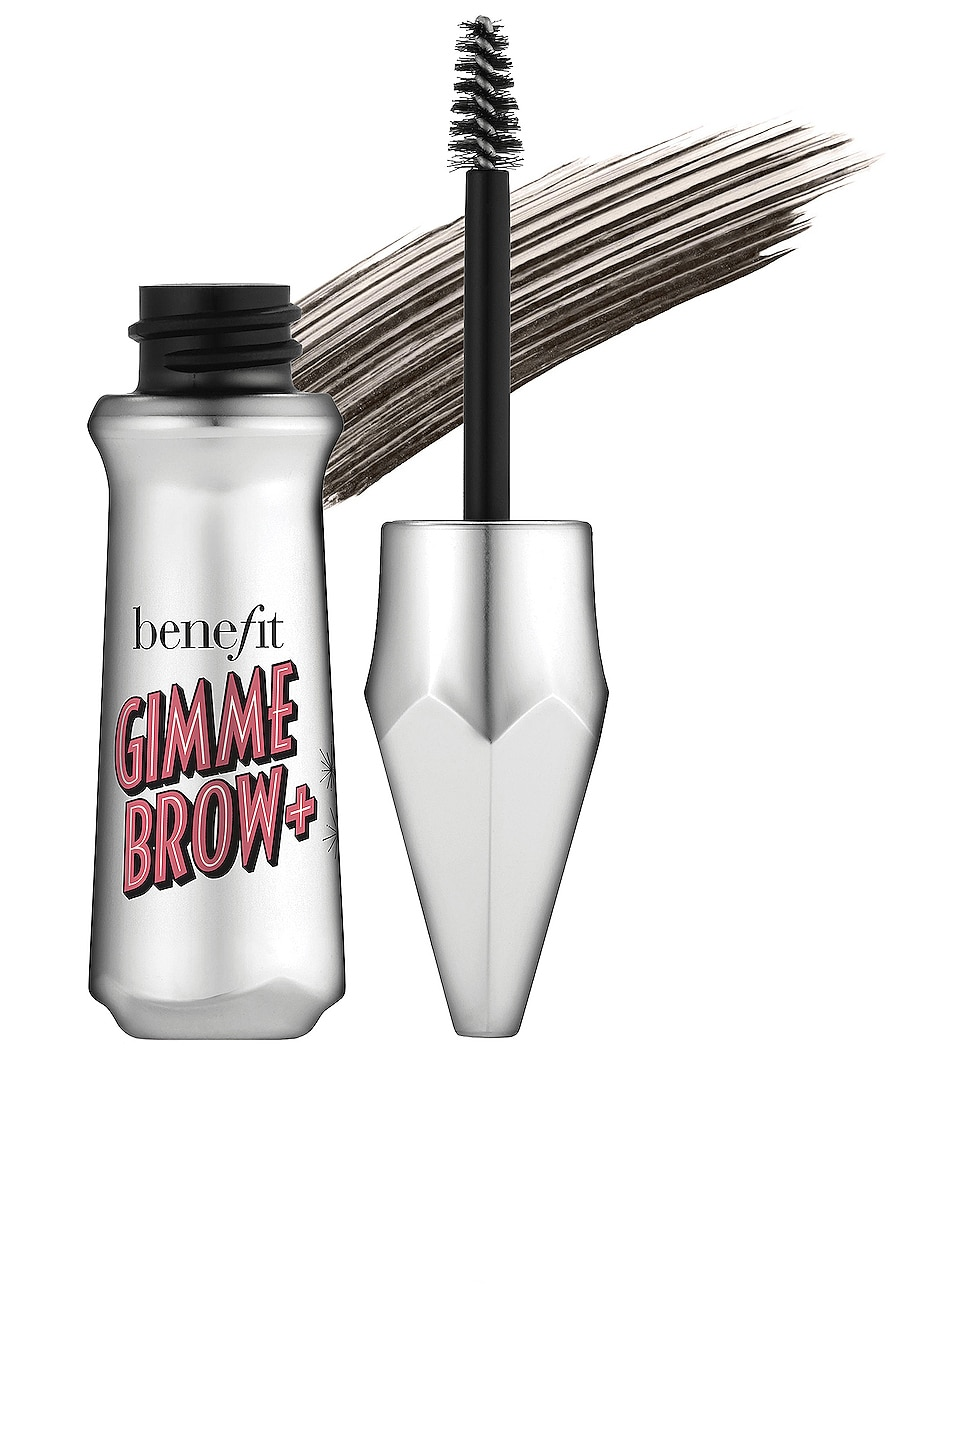 Benefit Cosmetics Mini Gimme Brow+ Volumizing Eyebrow Gel in 05